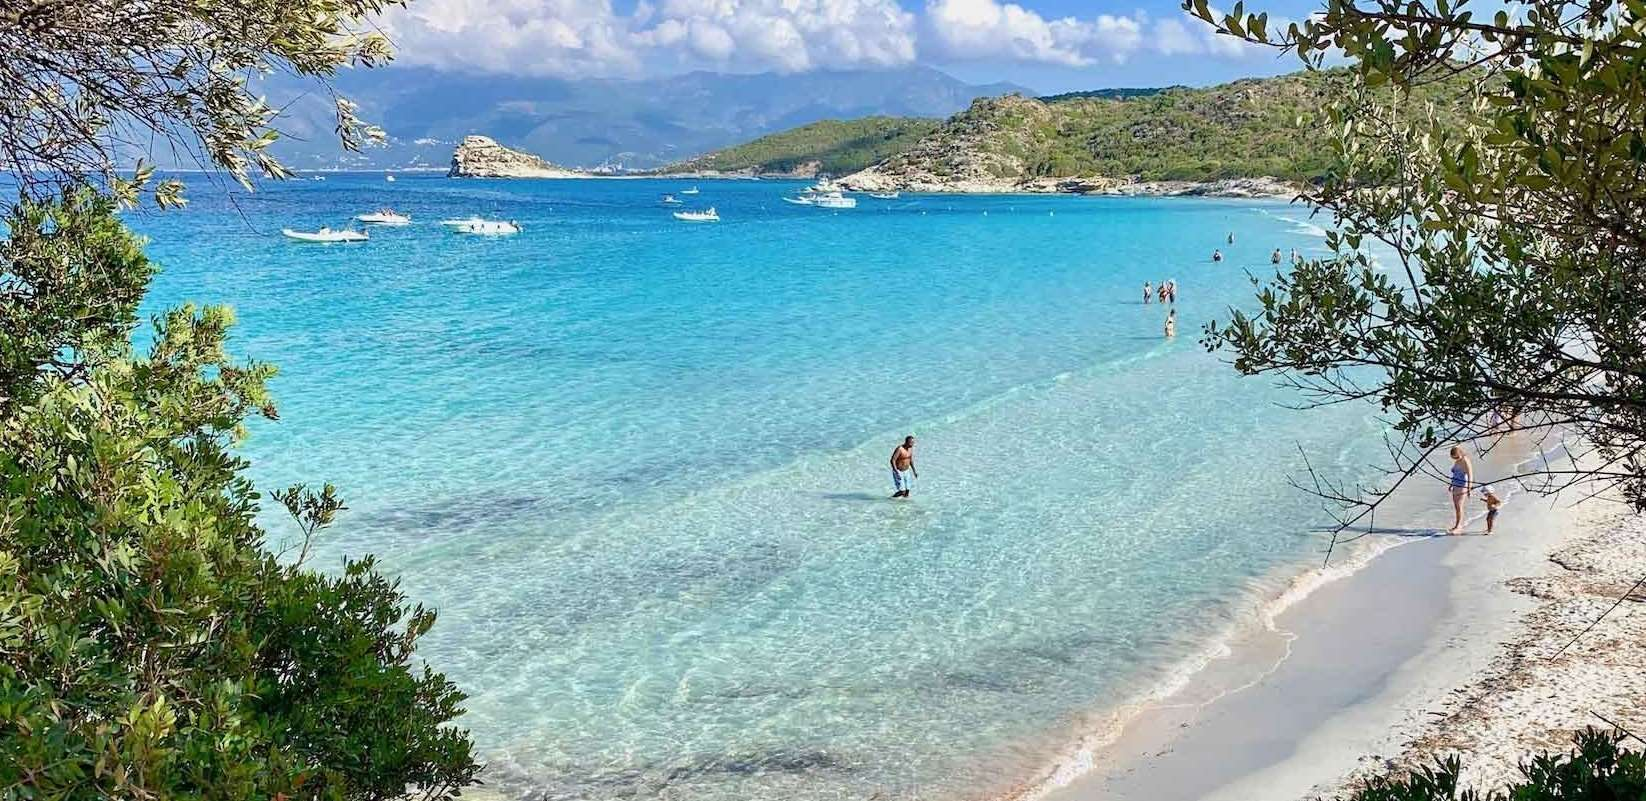 France Beach Corsica I M Coming The Sprint Sisters Blery Ily